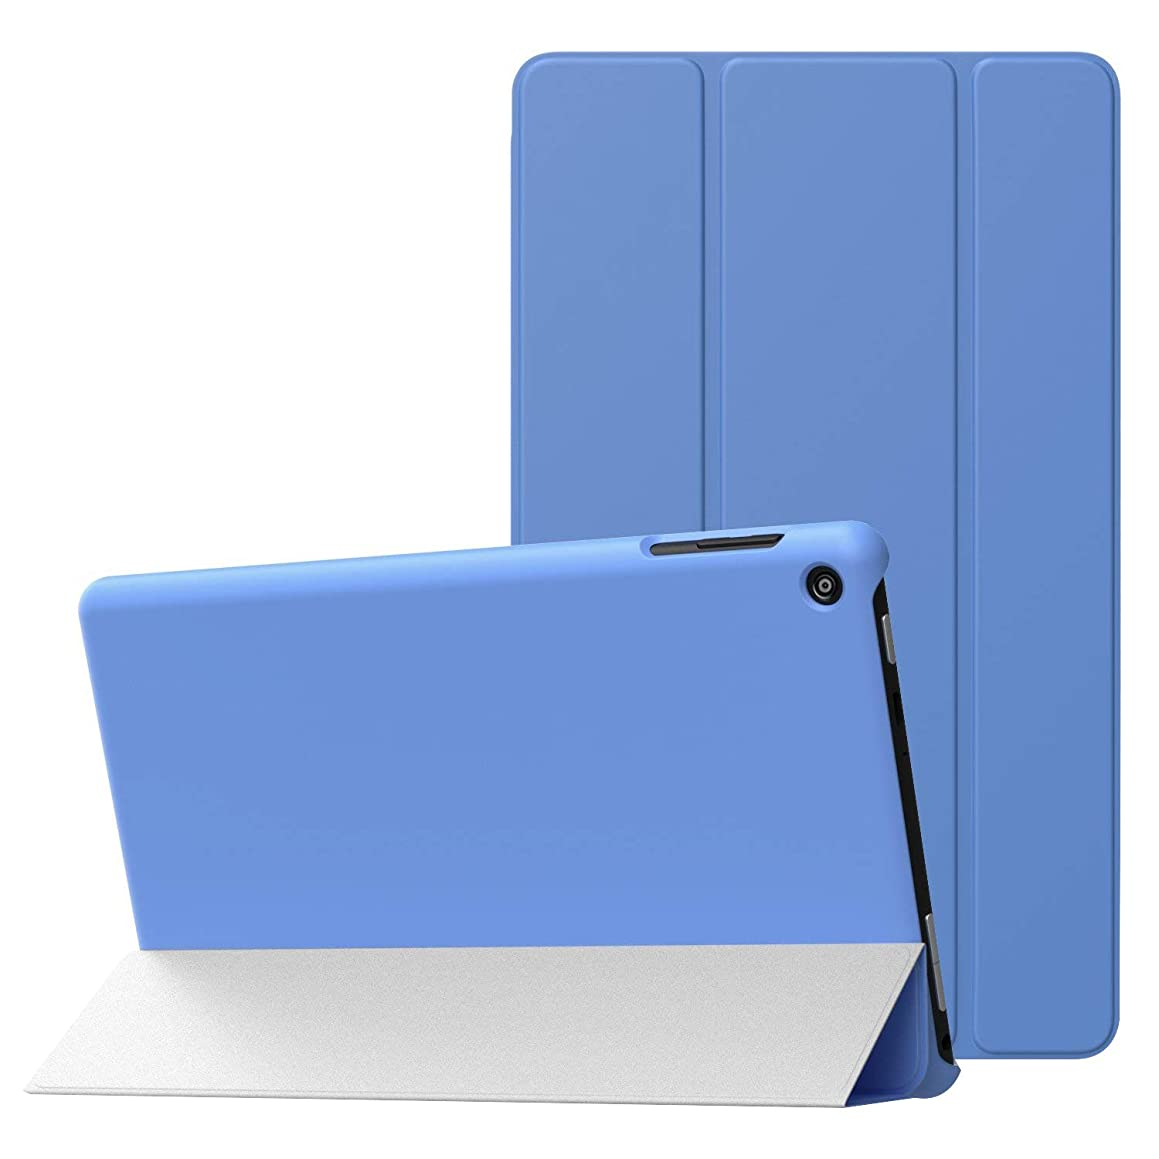 MoKo Case for Fire HD 8 2016 Tablet - Slim Lightweight Smart-shell Stand Cover with Auto Wake/Sleep for Amazon Fire HD 8 (Previous 6th Generation - 2016 Release ONLY), BLUE